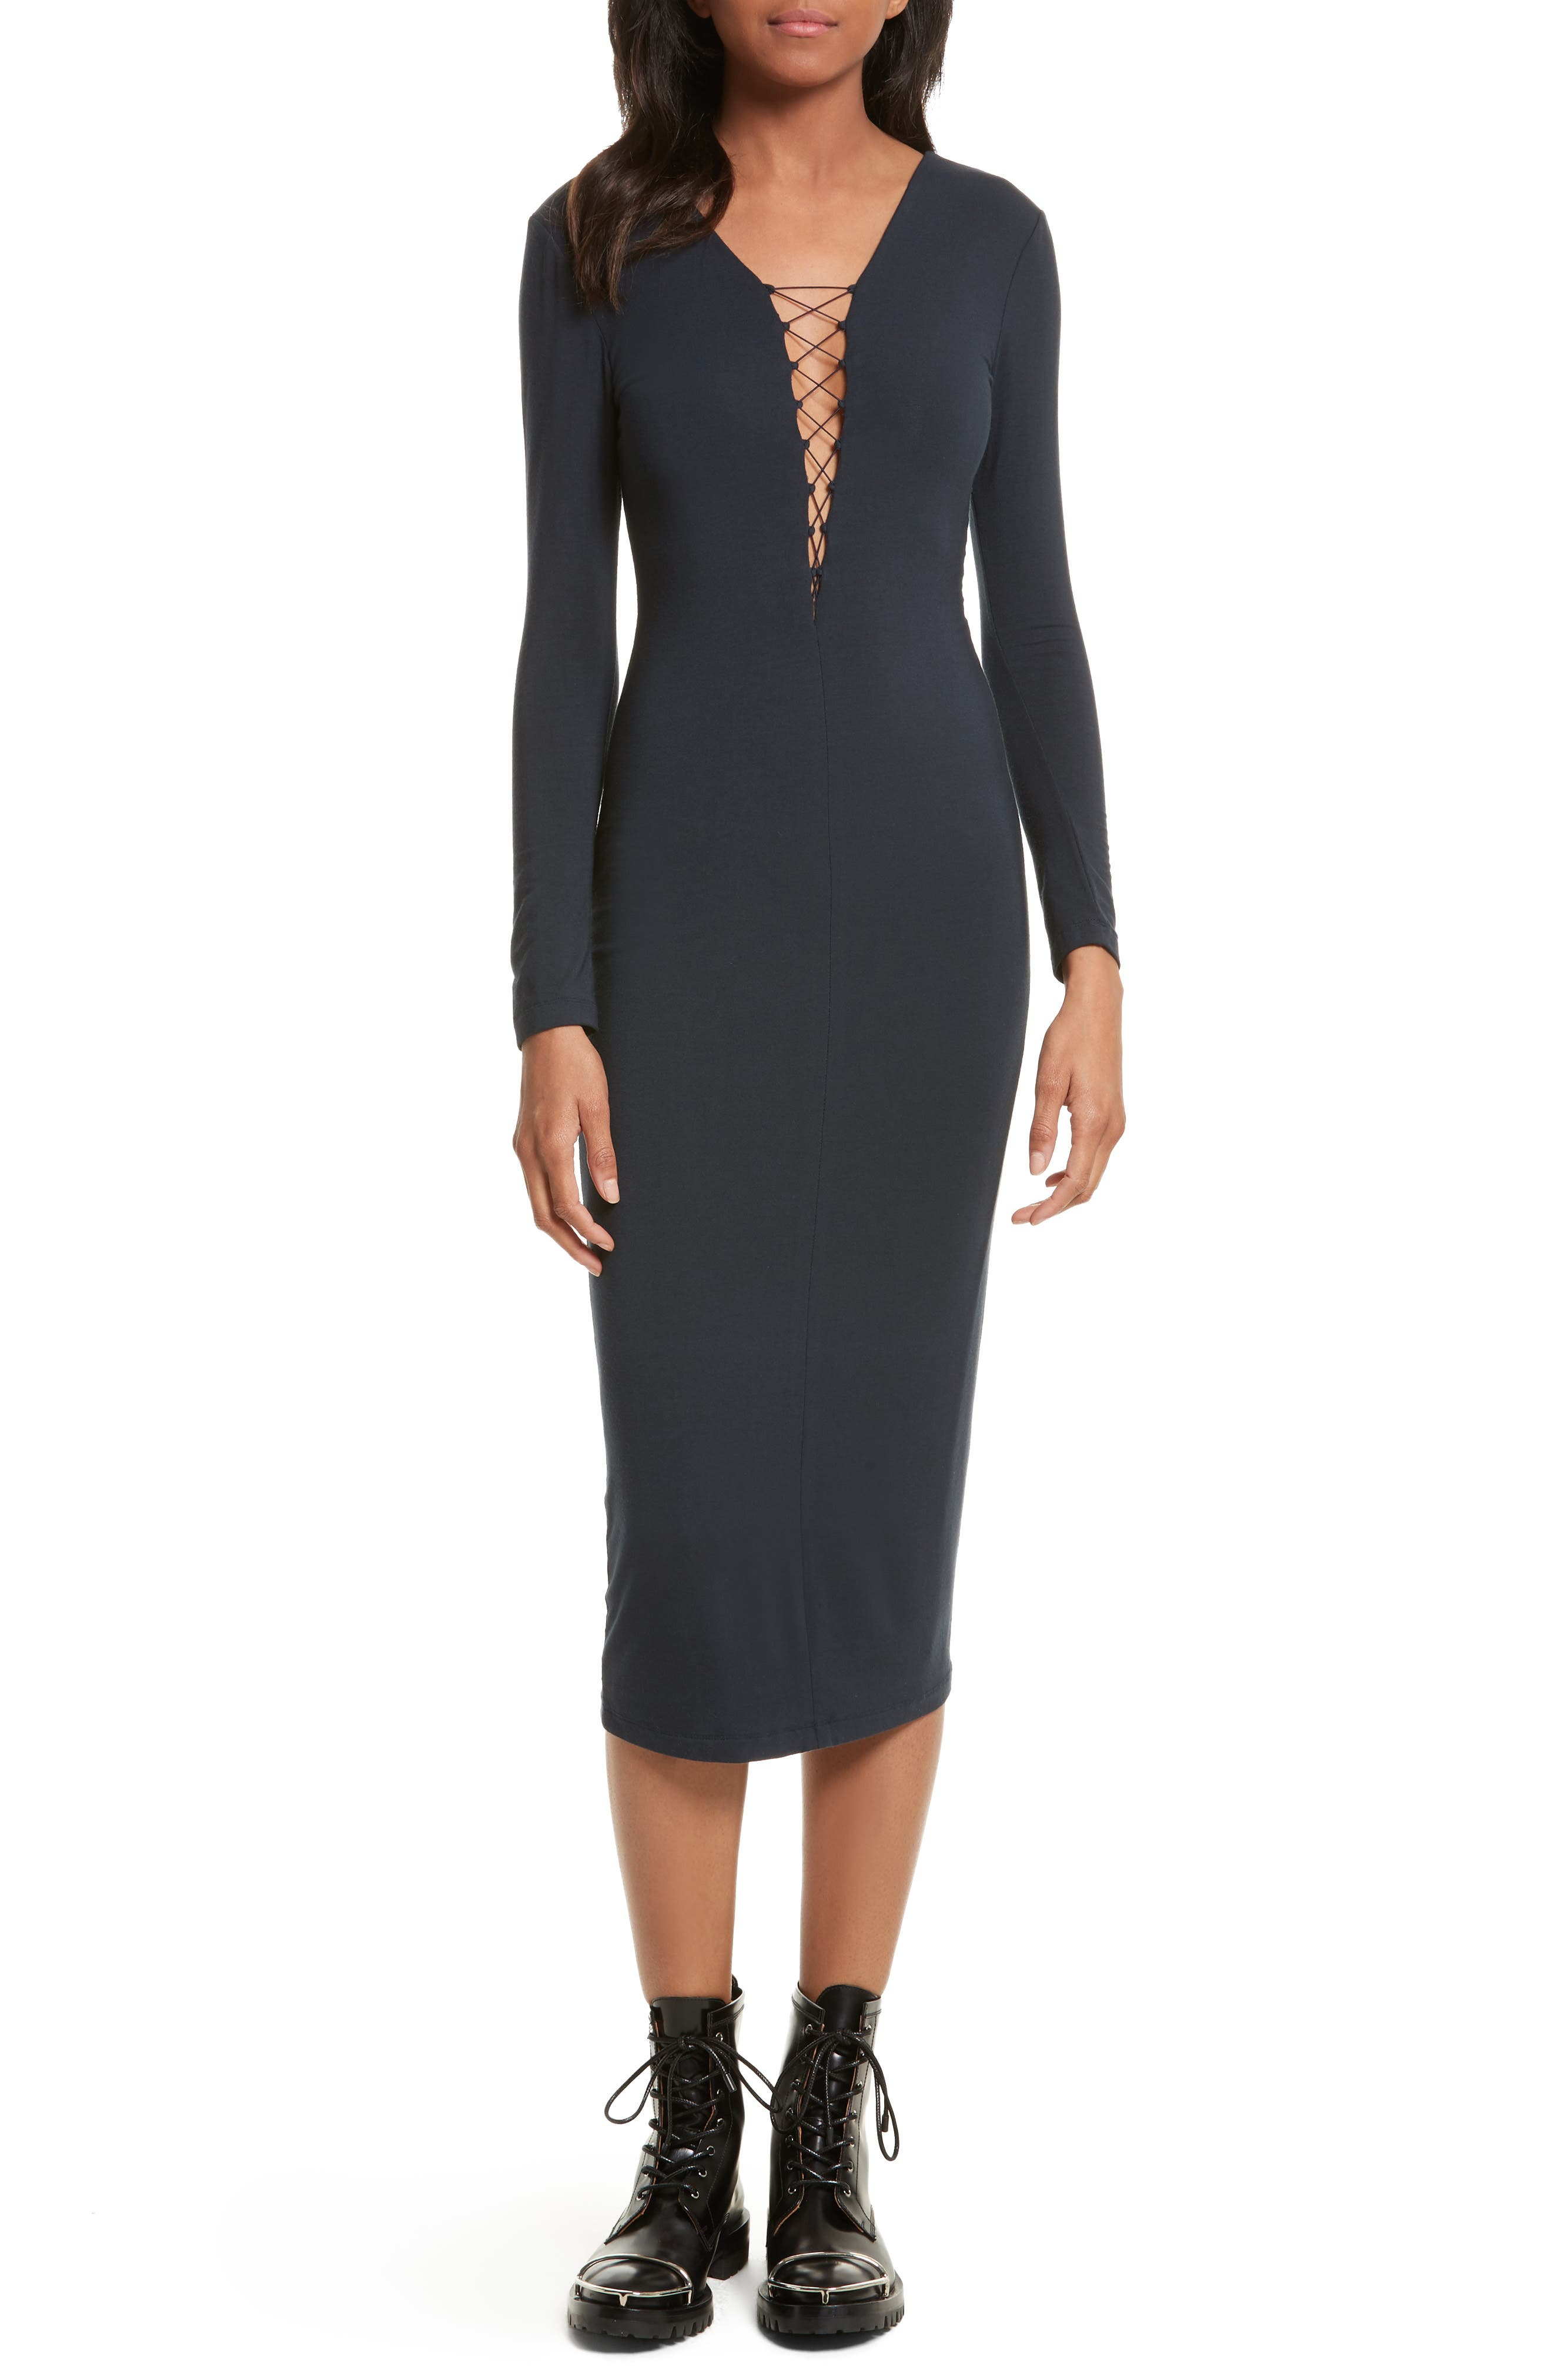 Alternate Image 1 Selected - T by Alexander Wang Lace-Up Midi Dress